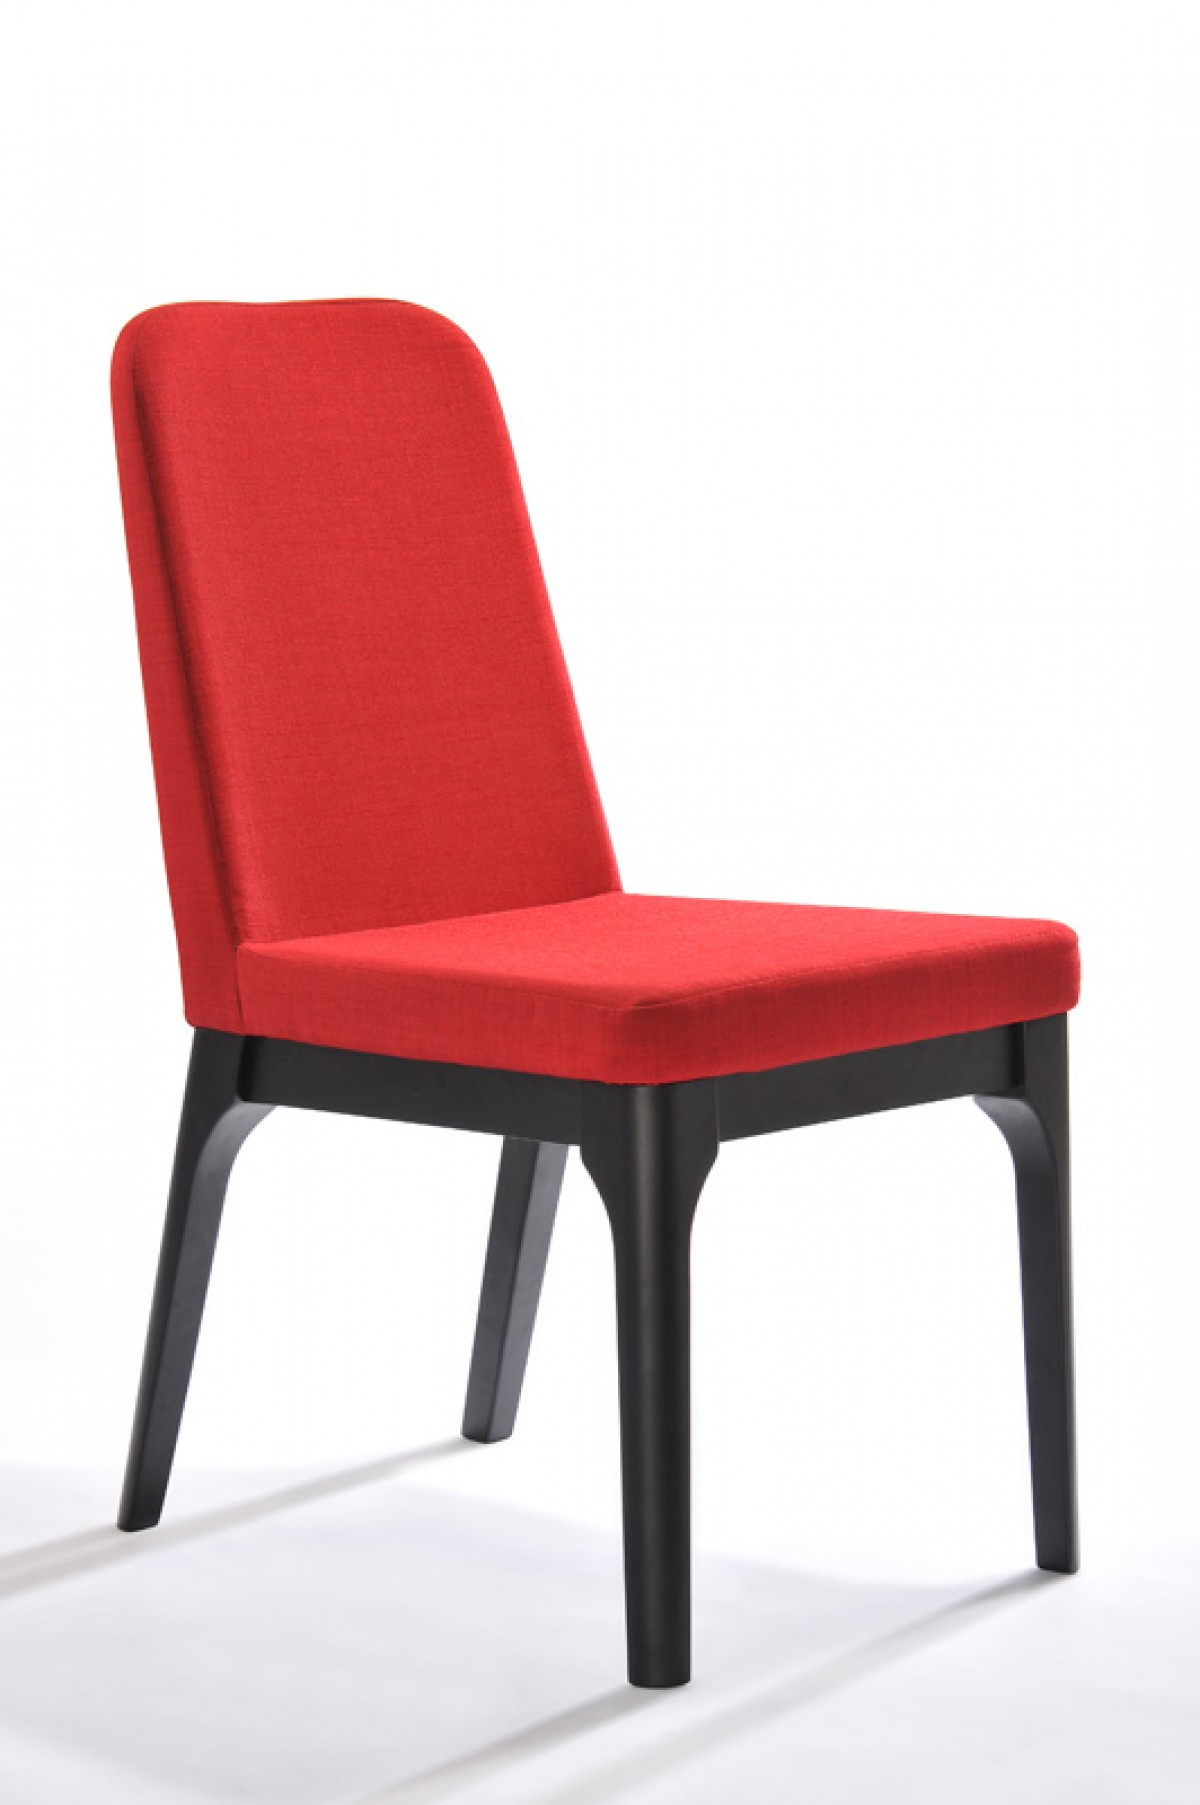 Modrest Comet Modern Red Fabric Dining Chair Set Of 2 Dining Chairs Dining